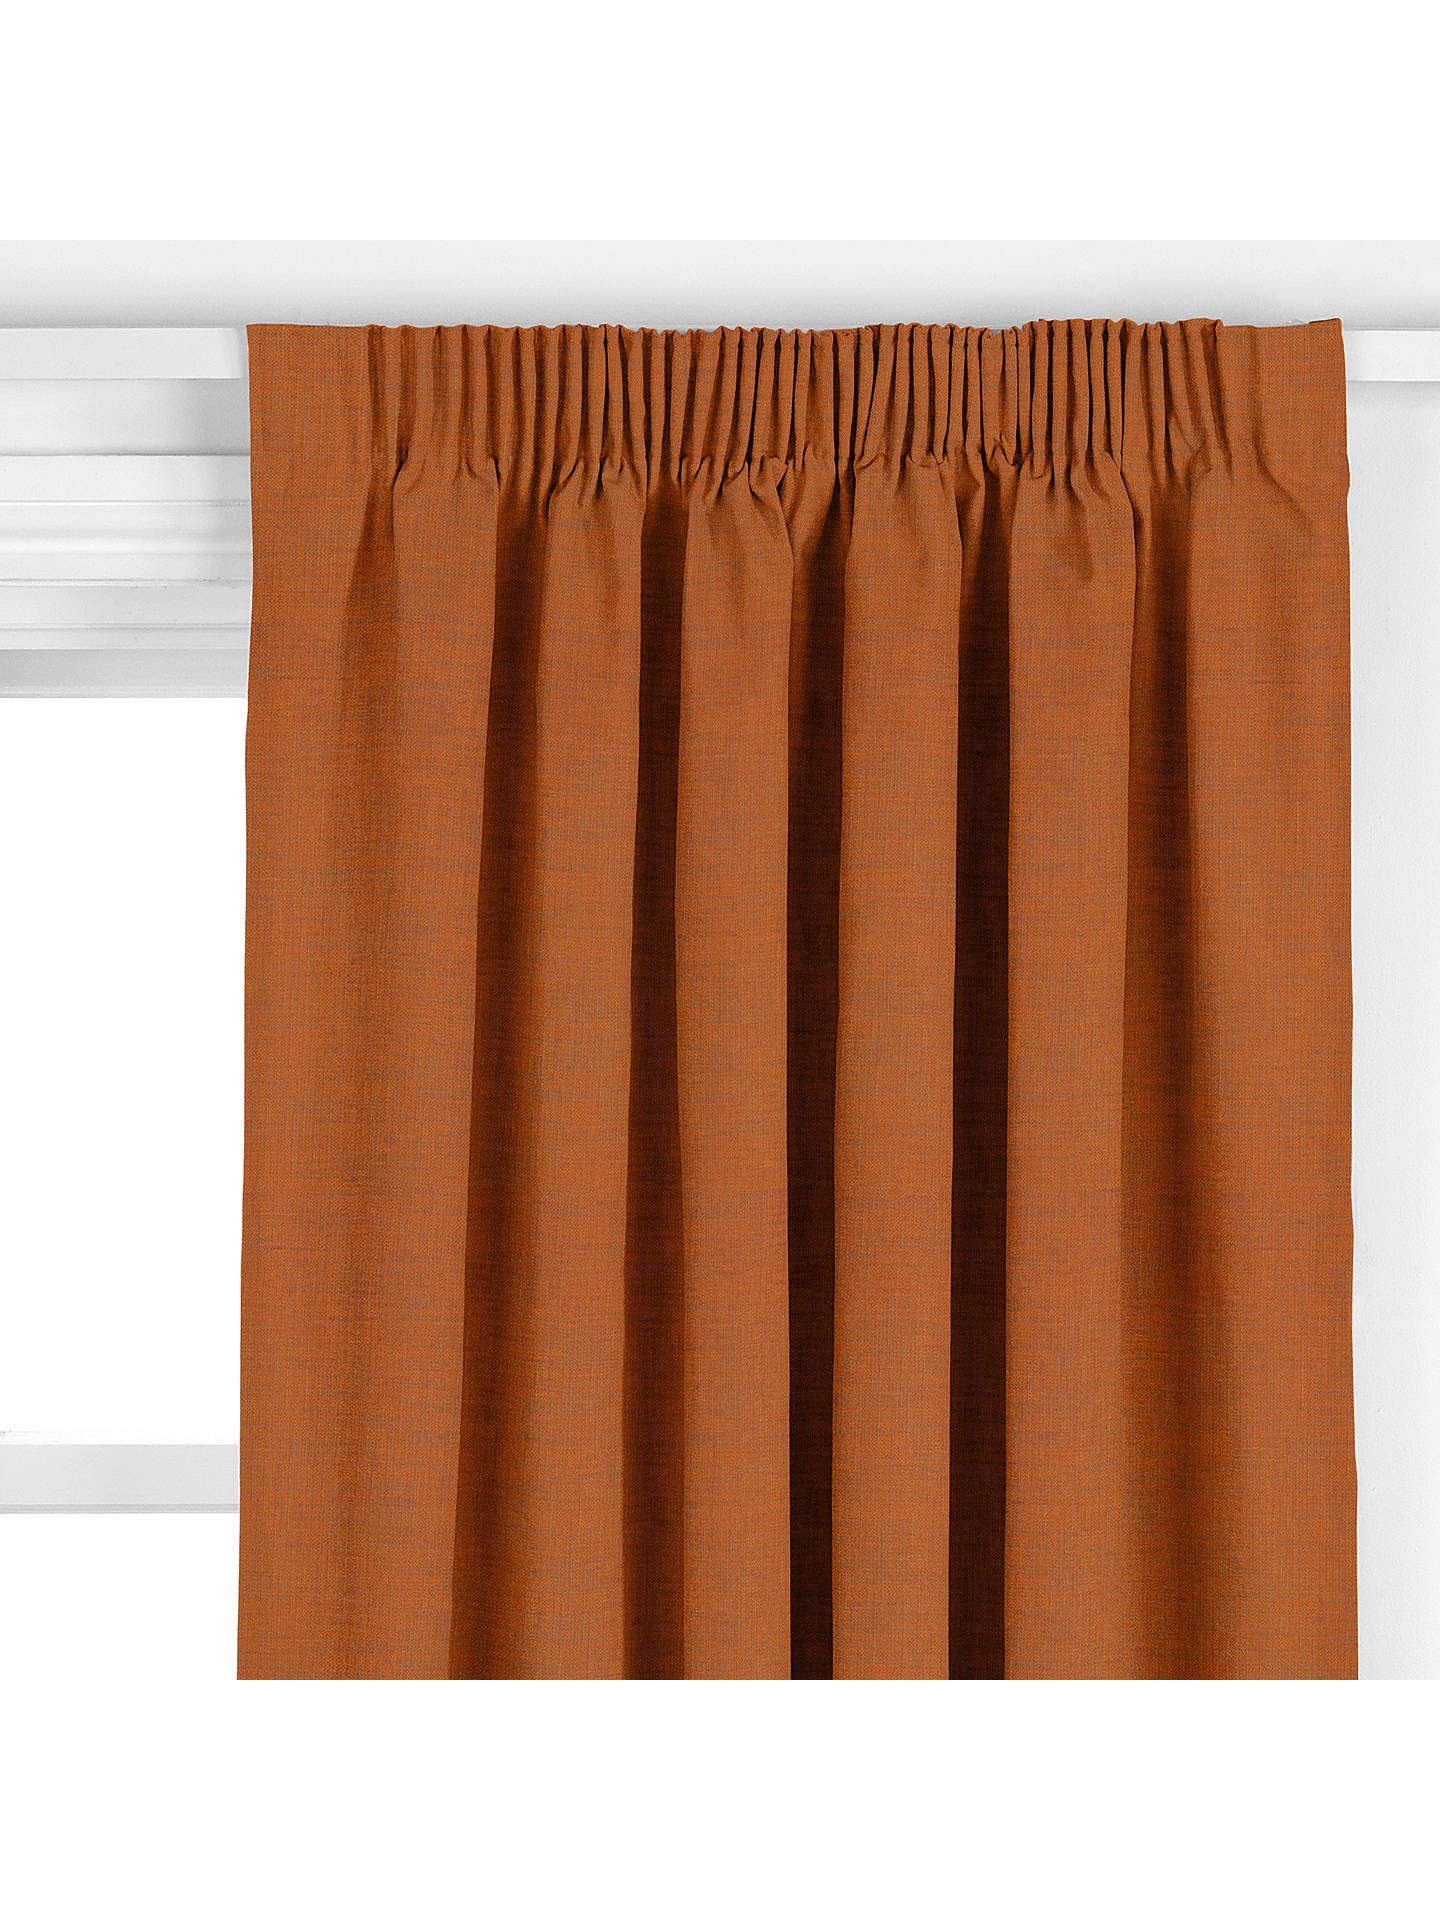 John Lewis Amp Partners Blyton Made To Measure Curtains